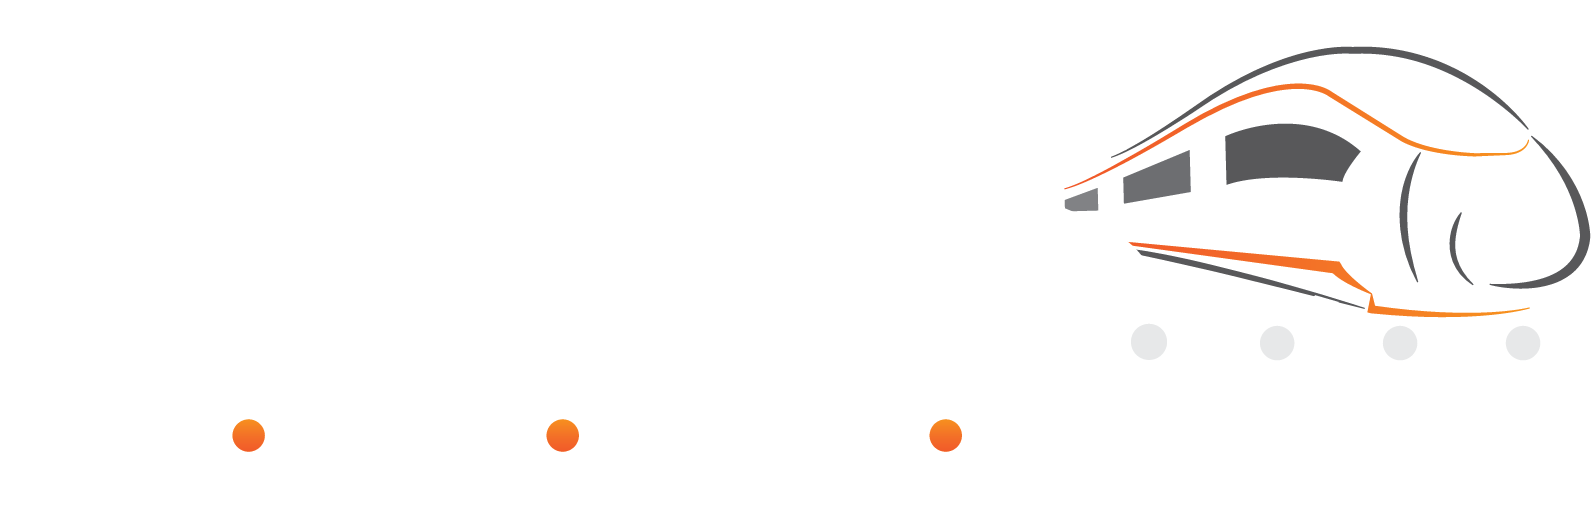 Train Control Management Systems 2021